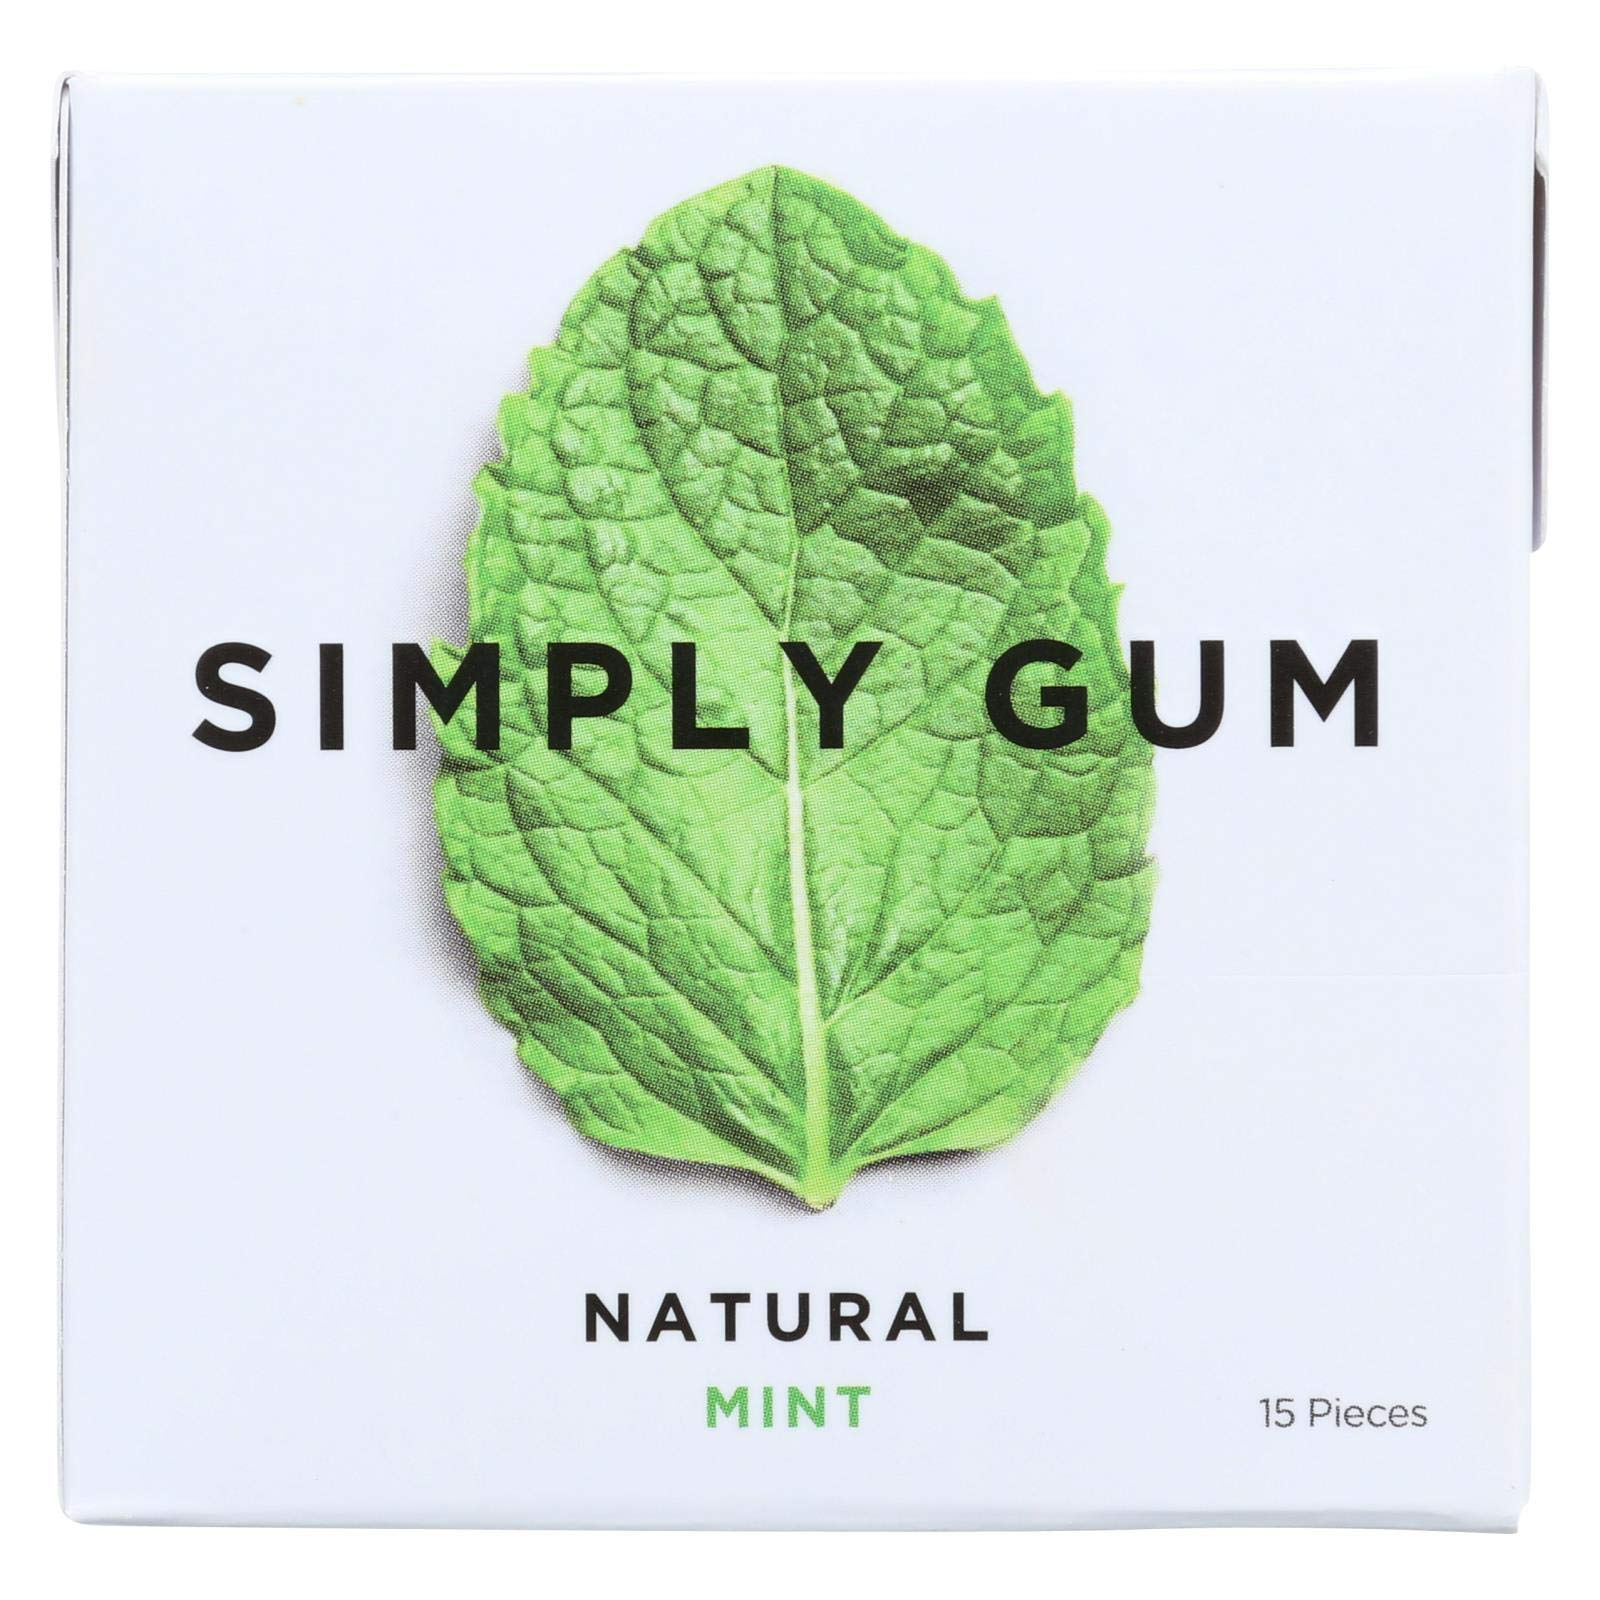 Simply Gum All Natural Gum - Mint - Pack of 12 - 15 Count by Simply Gum